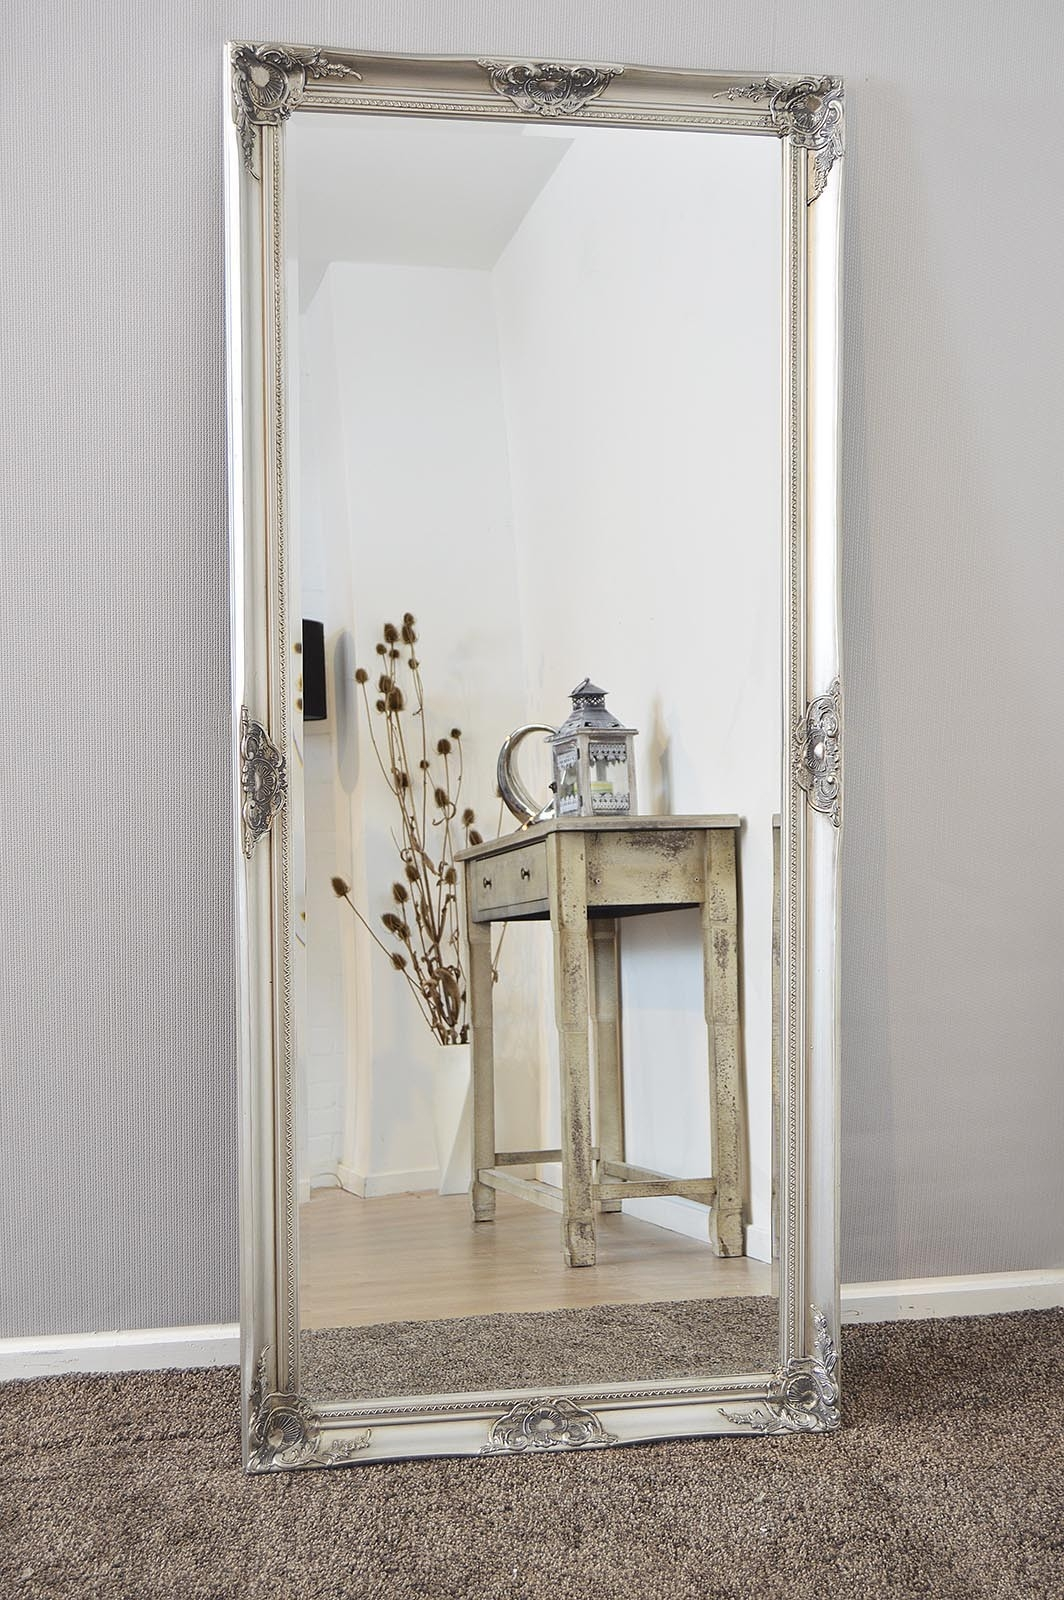 New Large Silver Decorative Shab Chic Wall Mirror 5ft3 X 2ft5 Regarding White Shabby Chic Wall Mirror (View 5 of 15)